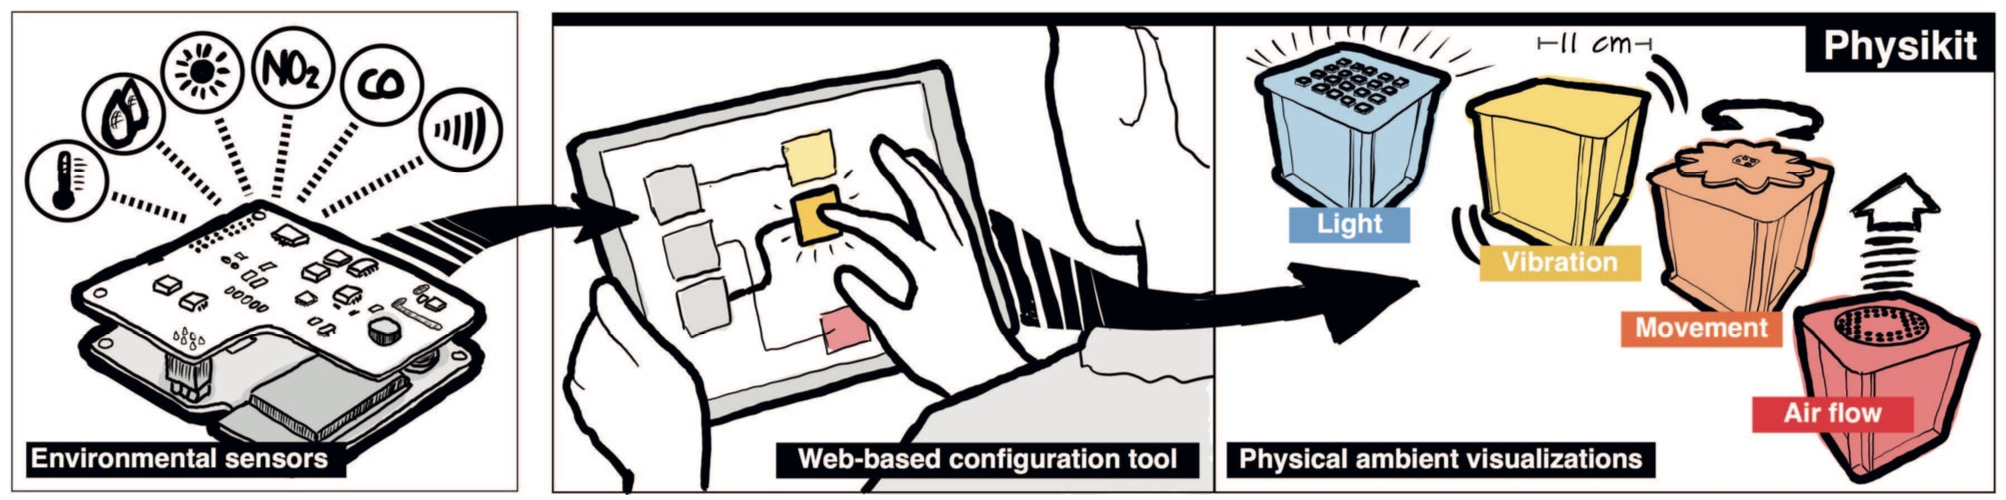 Cartoon illustrating how environmental sensor data can be manipulated through a web interface to show changes in air quality, temperature, light and noise levels